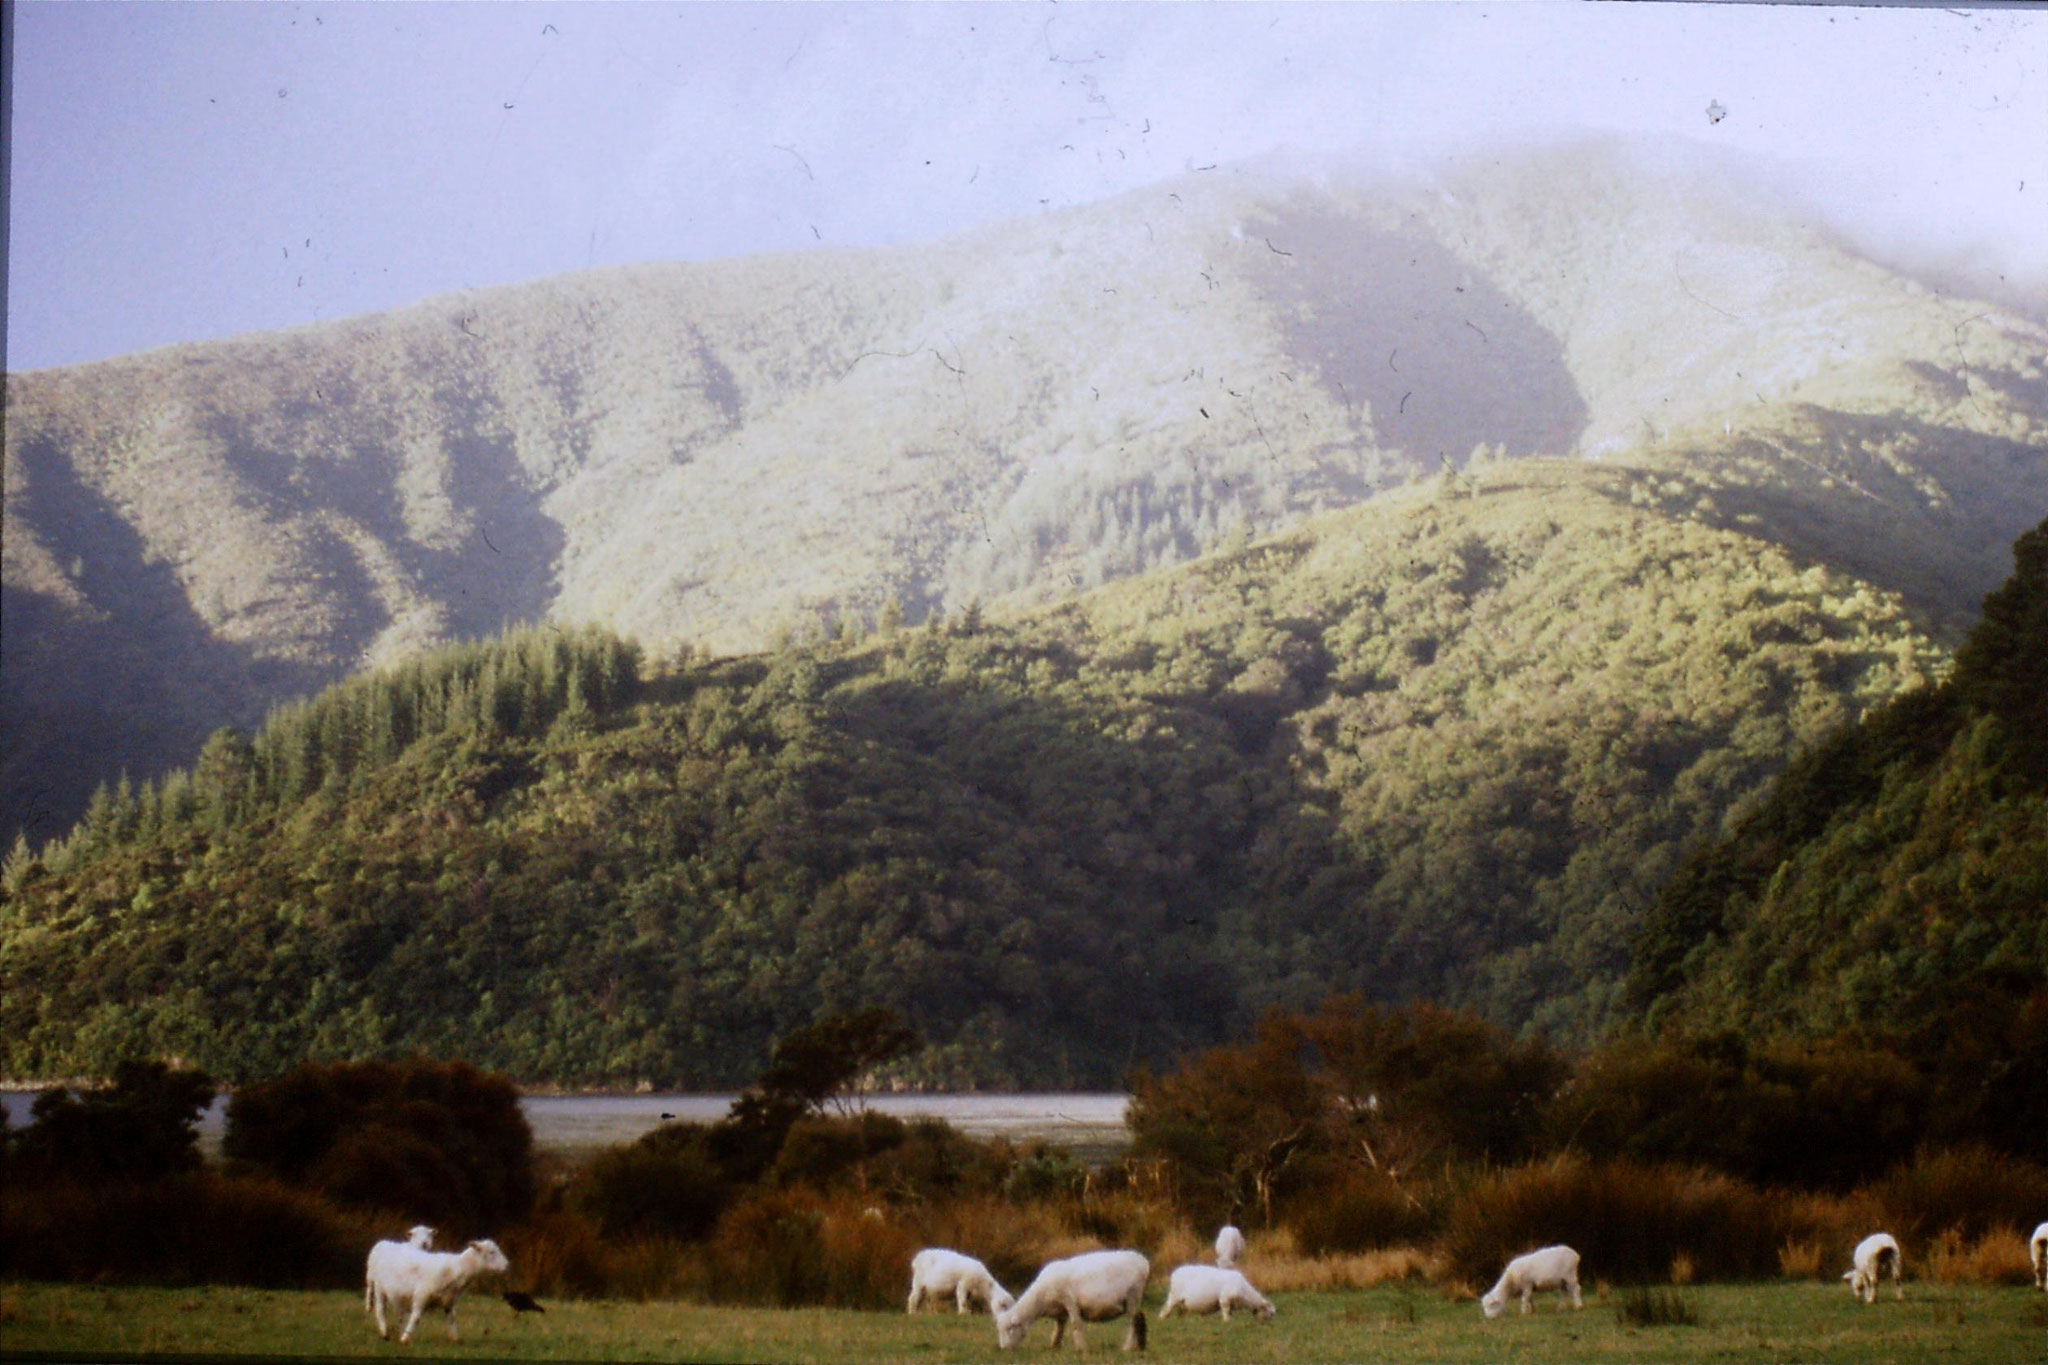 7/8/1990: 1: near Picton, our campsite at Whatamango Bay